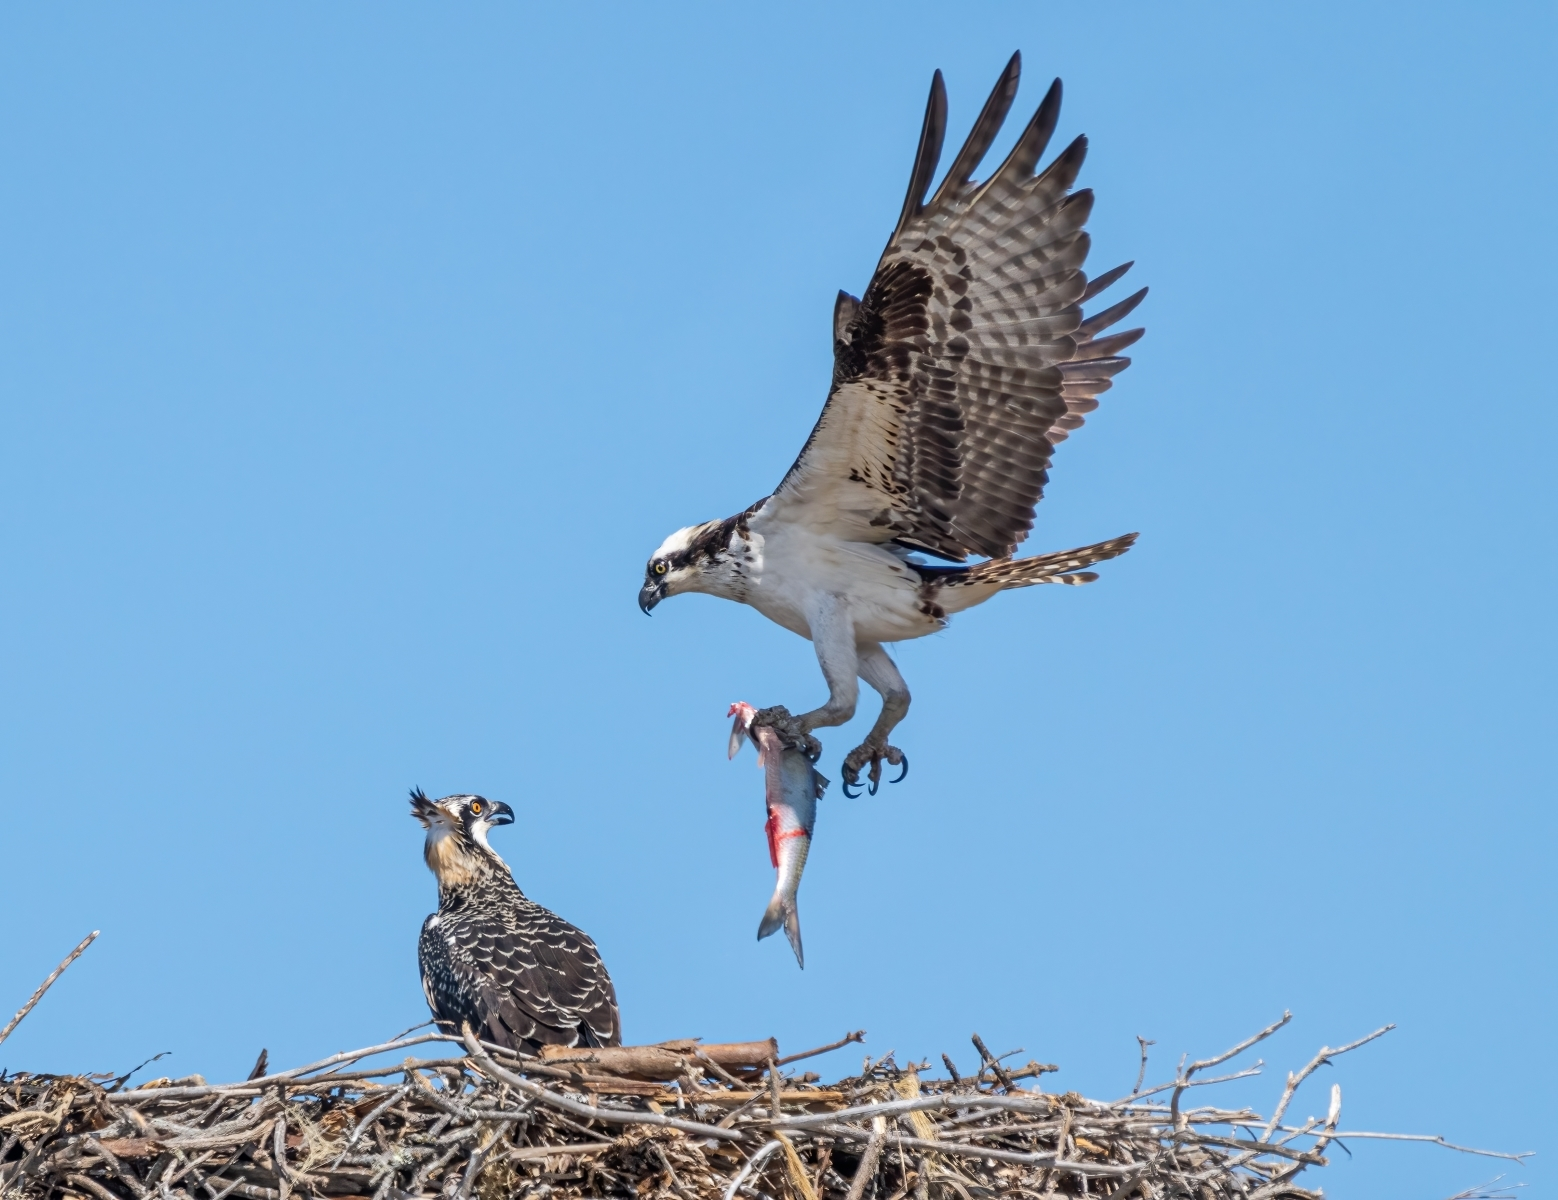 An-osprey-pandion-haliaetus-flies-into-its-nest-to-deliver-a-fish-to-its-chick-at-Point-Orient-Richmond-CA.-NI-1-Place-by-Tessa-Burt-PE